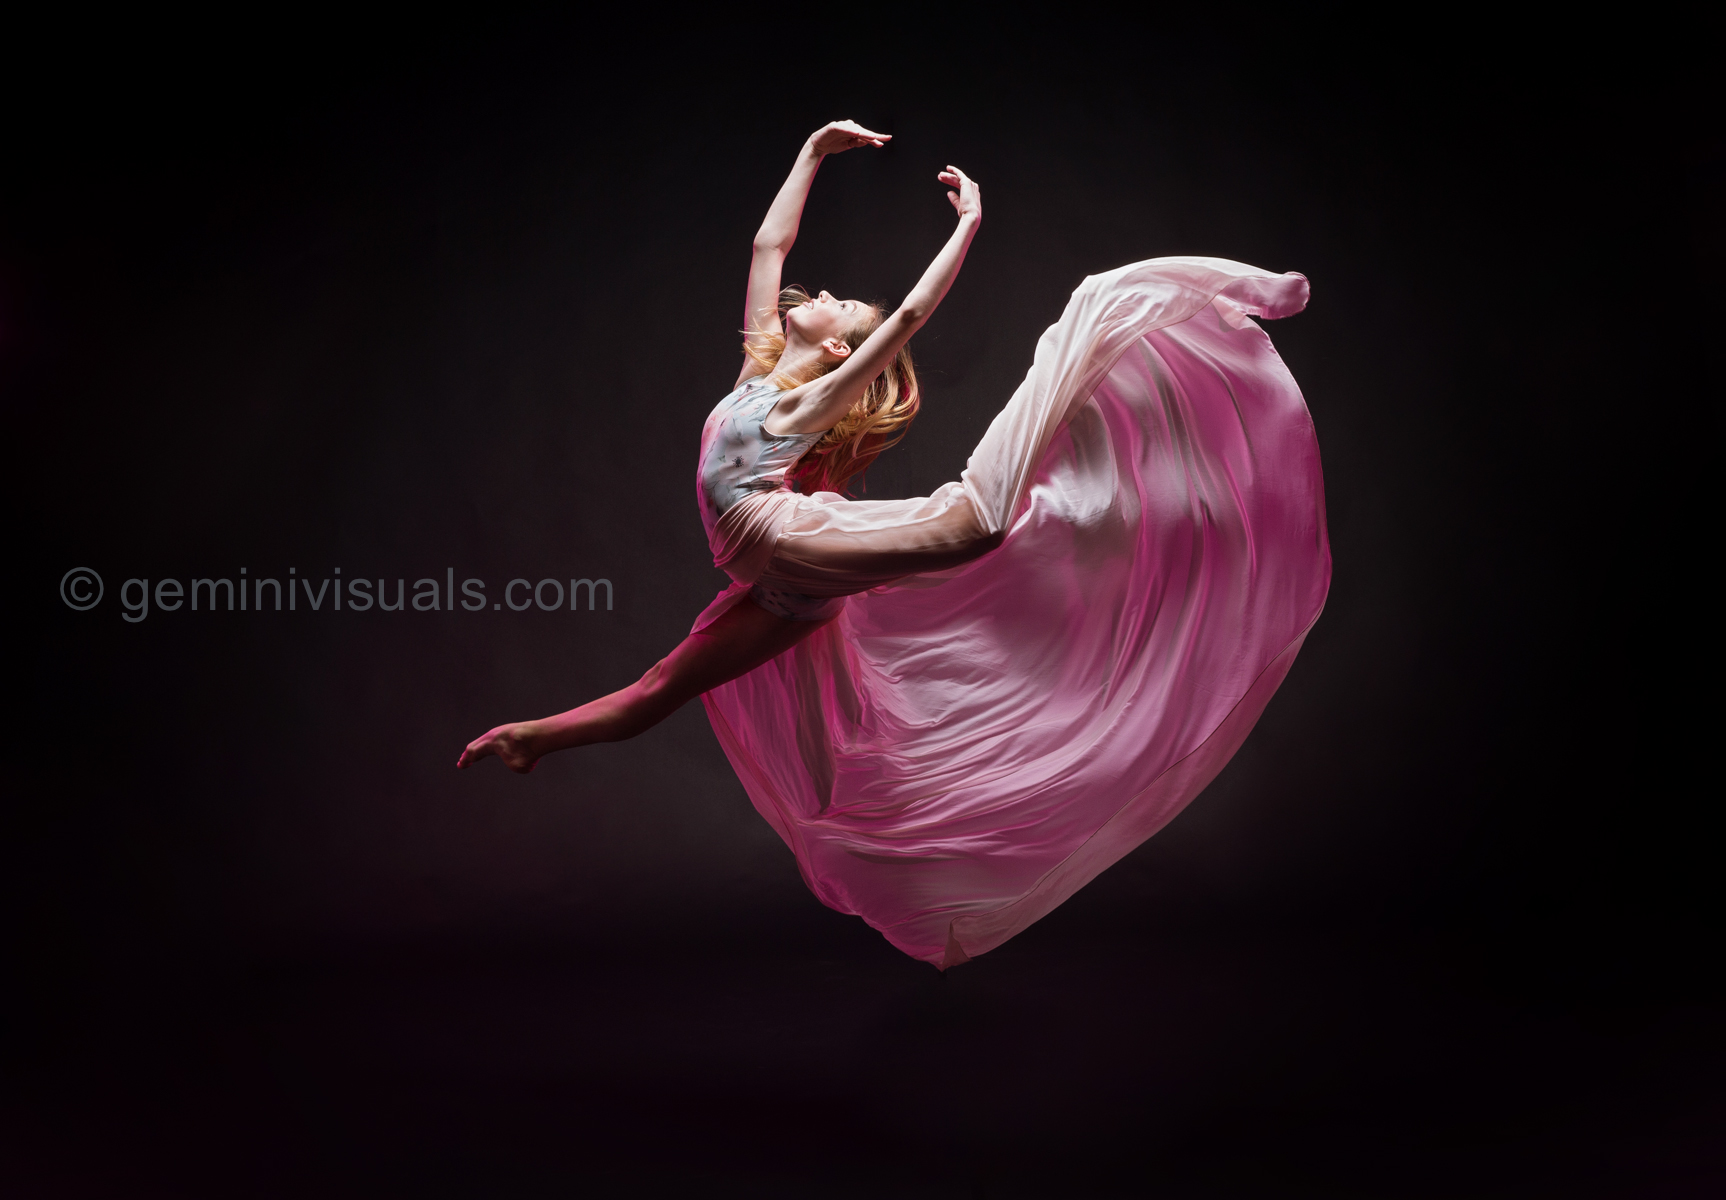 creative dance photographer, vancouver dance photography, creative dance, creative photography, adrienne Thiessen